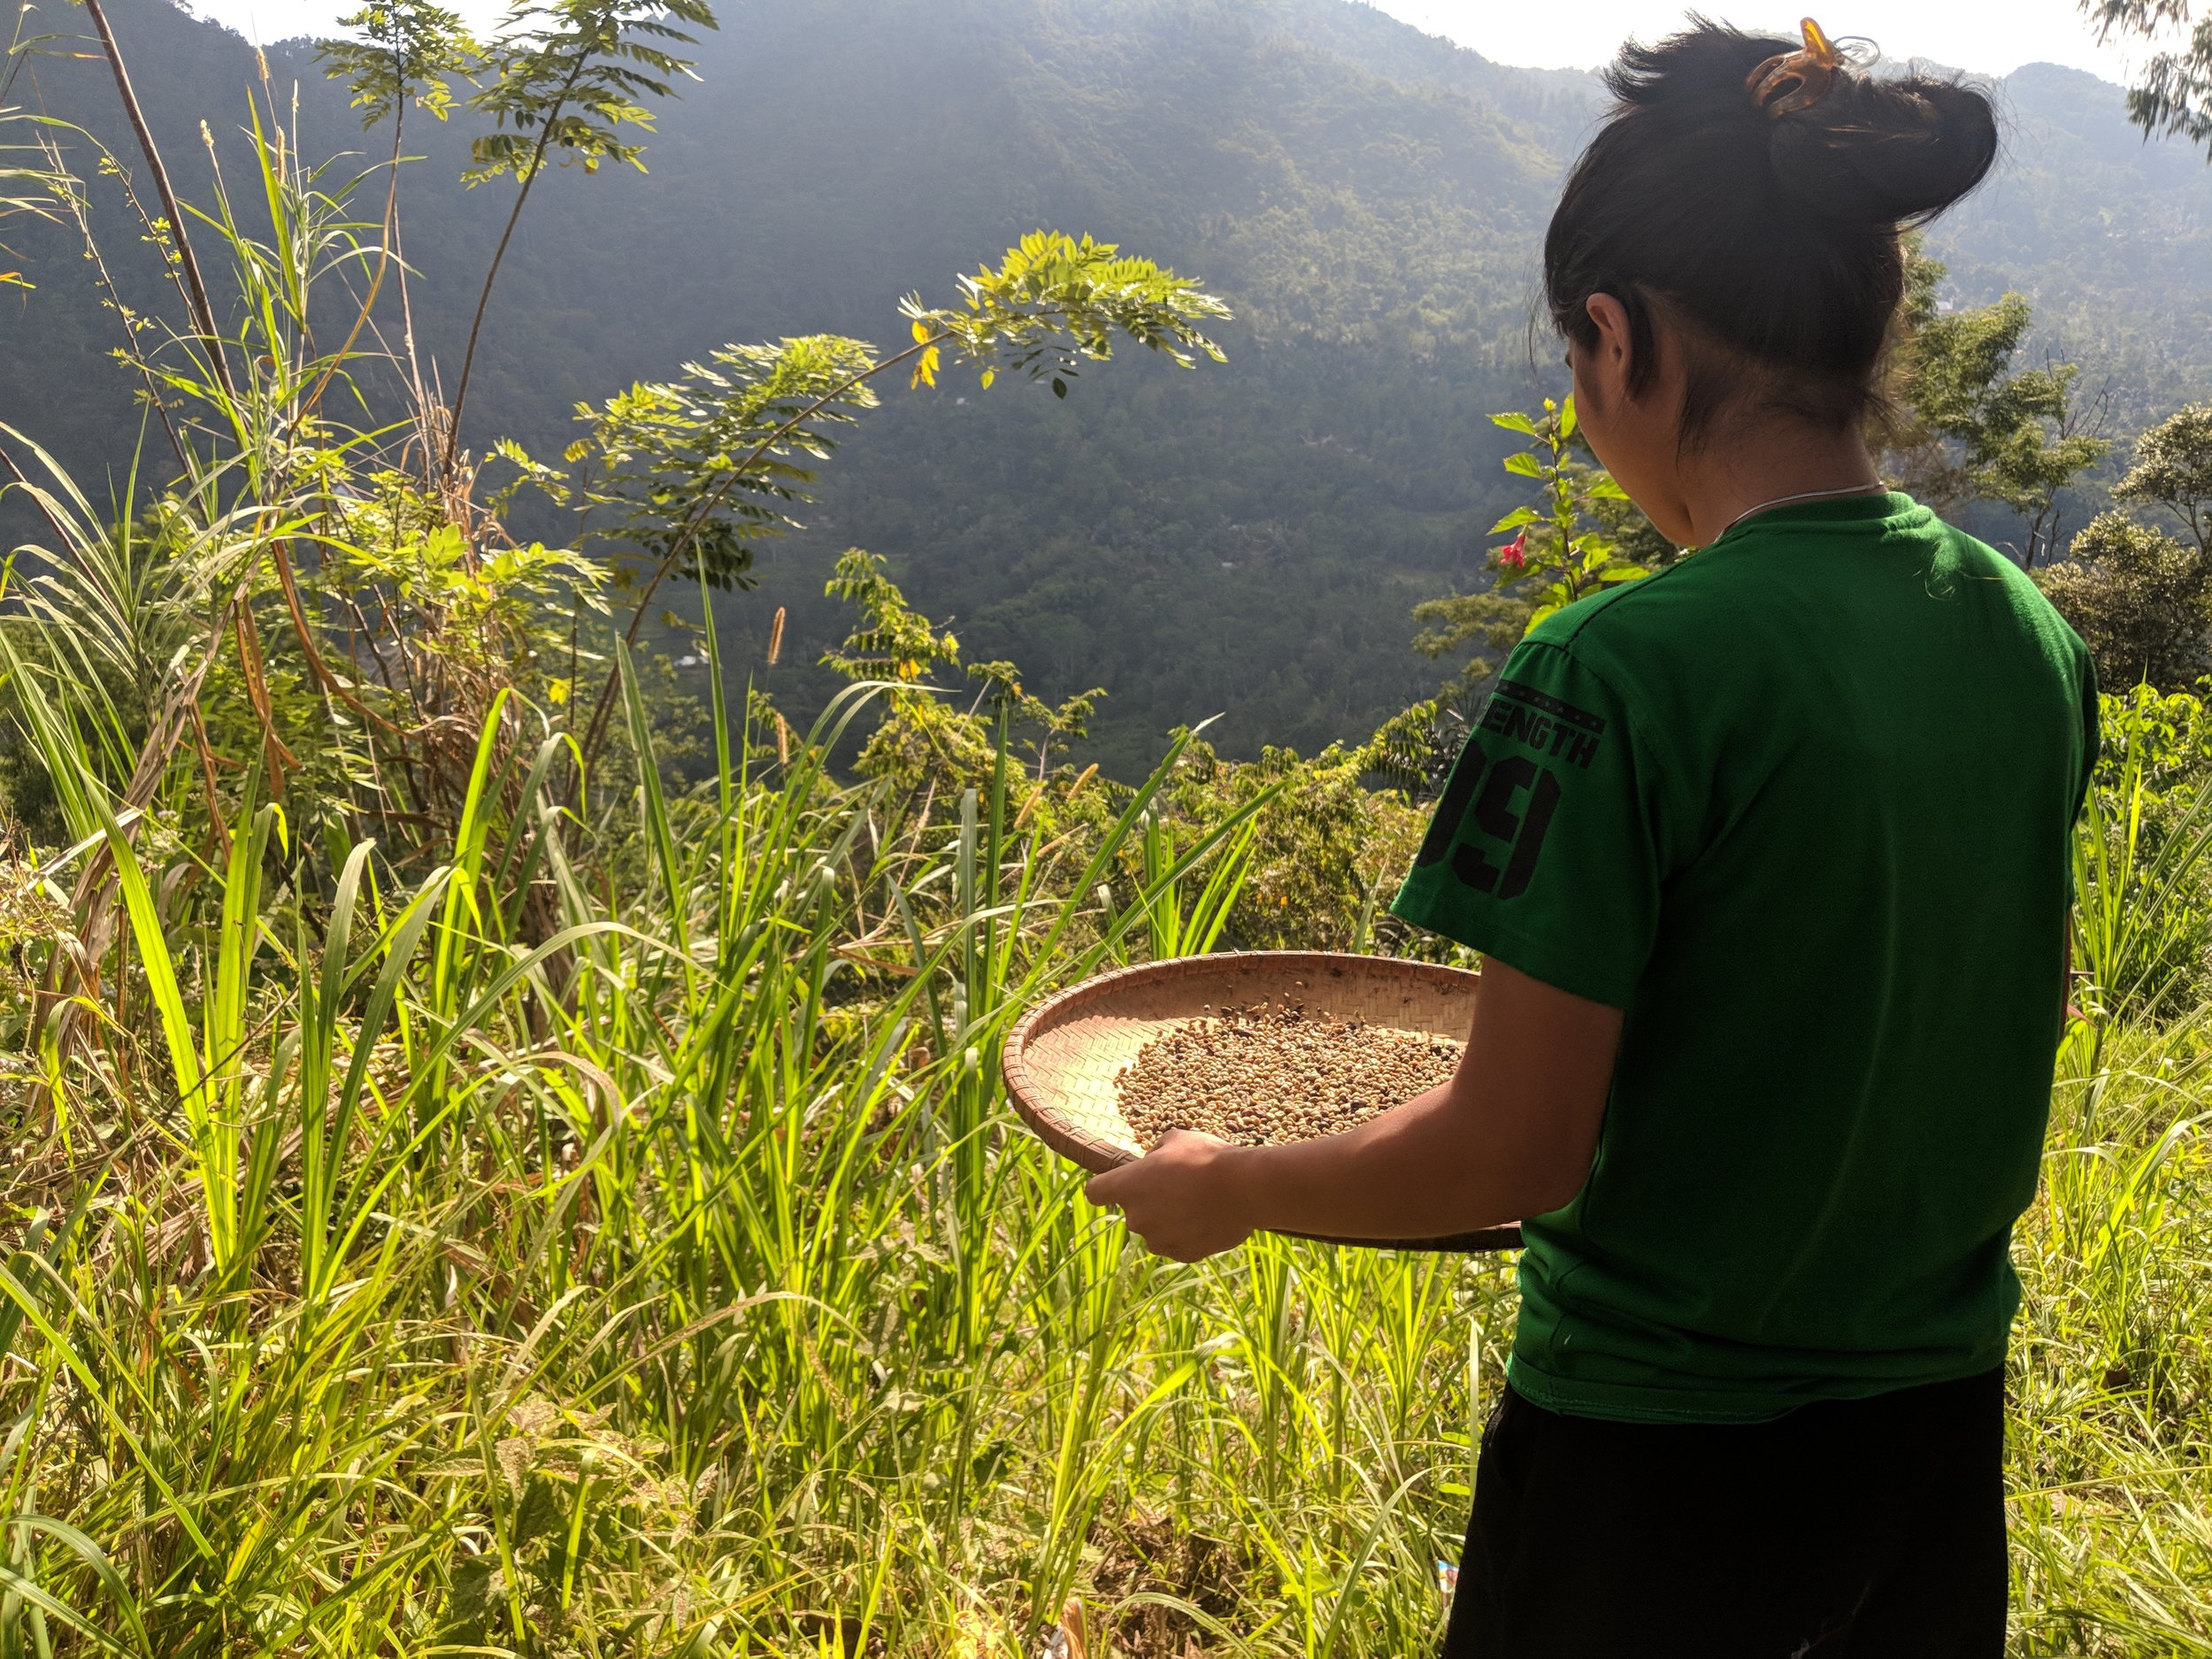 Our host family invited us to join them as they prepared coffee beans for use. They only harvest a small amount of coffee, to be used for personal consumption, and to give as a gift at funerals.